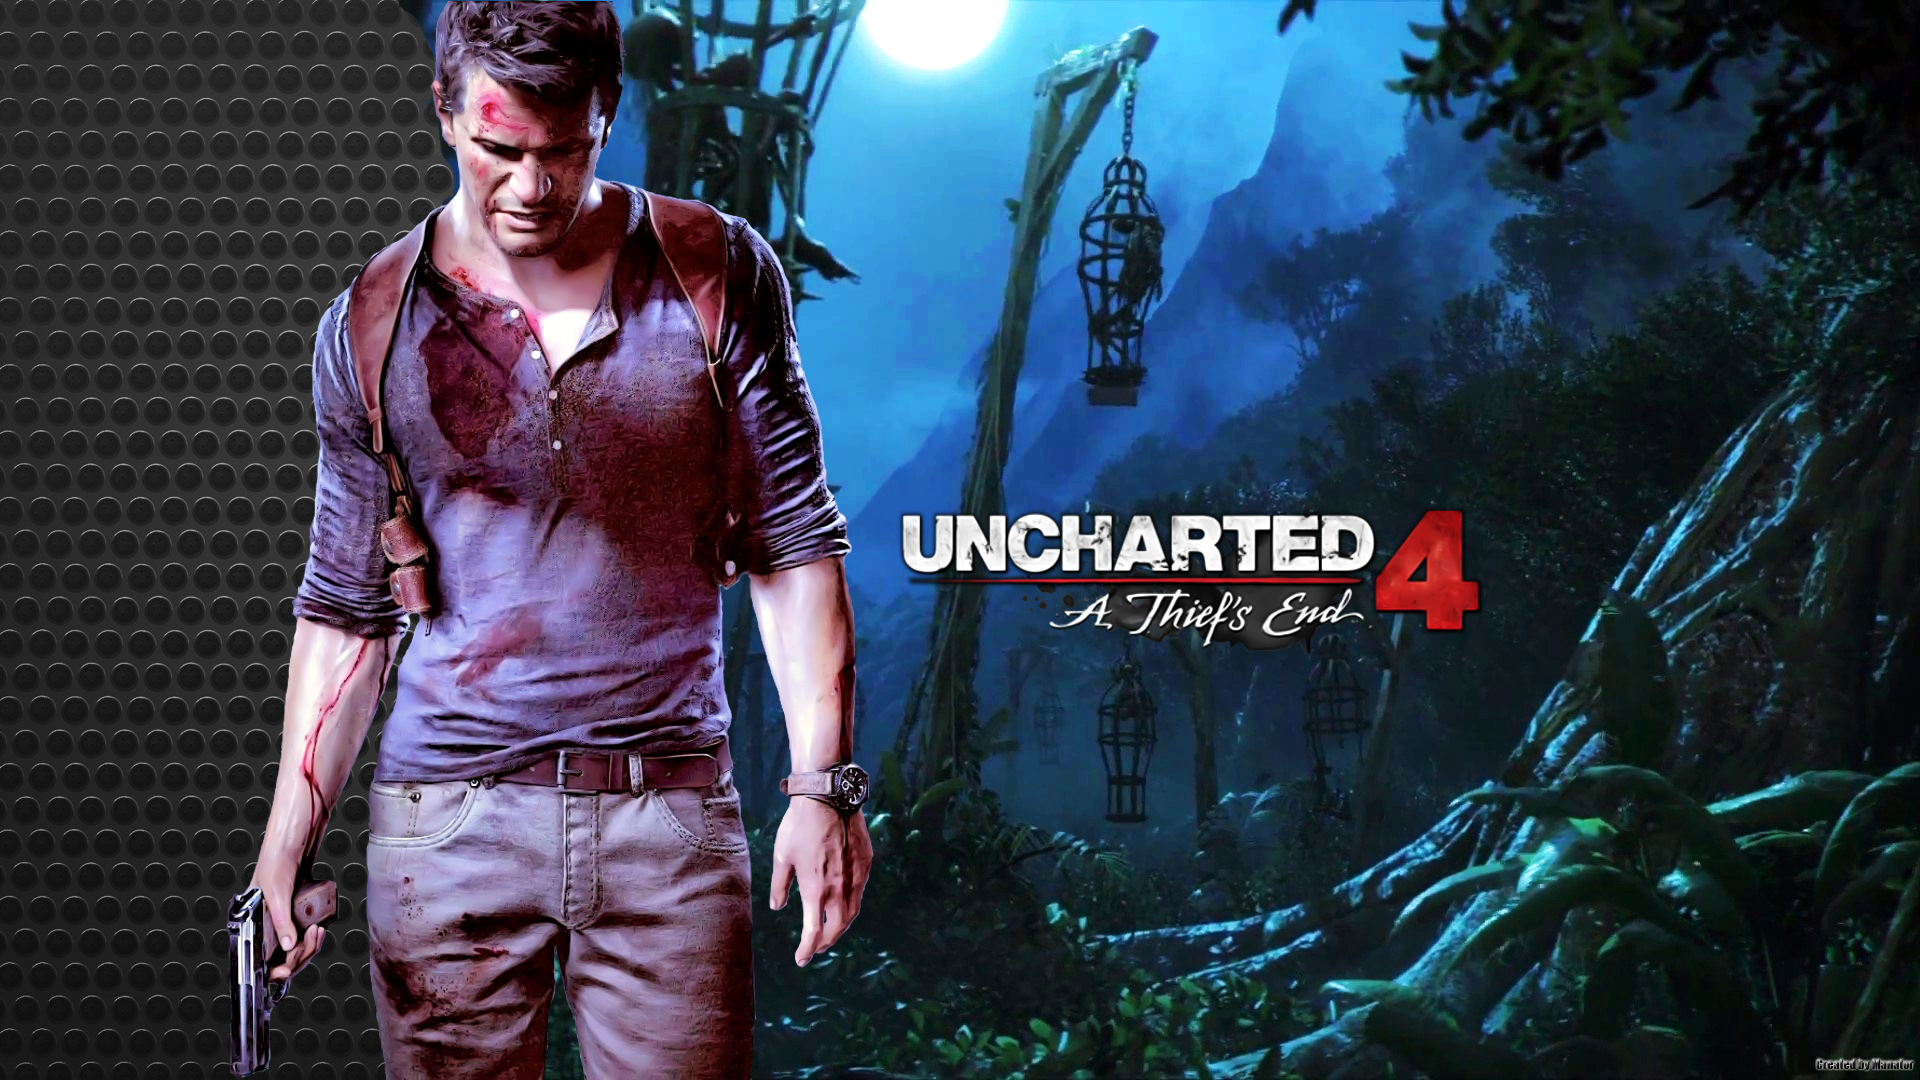 uncharted 4 hd wallpapers for desktop download